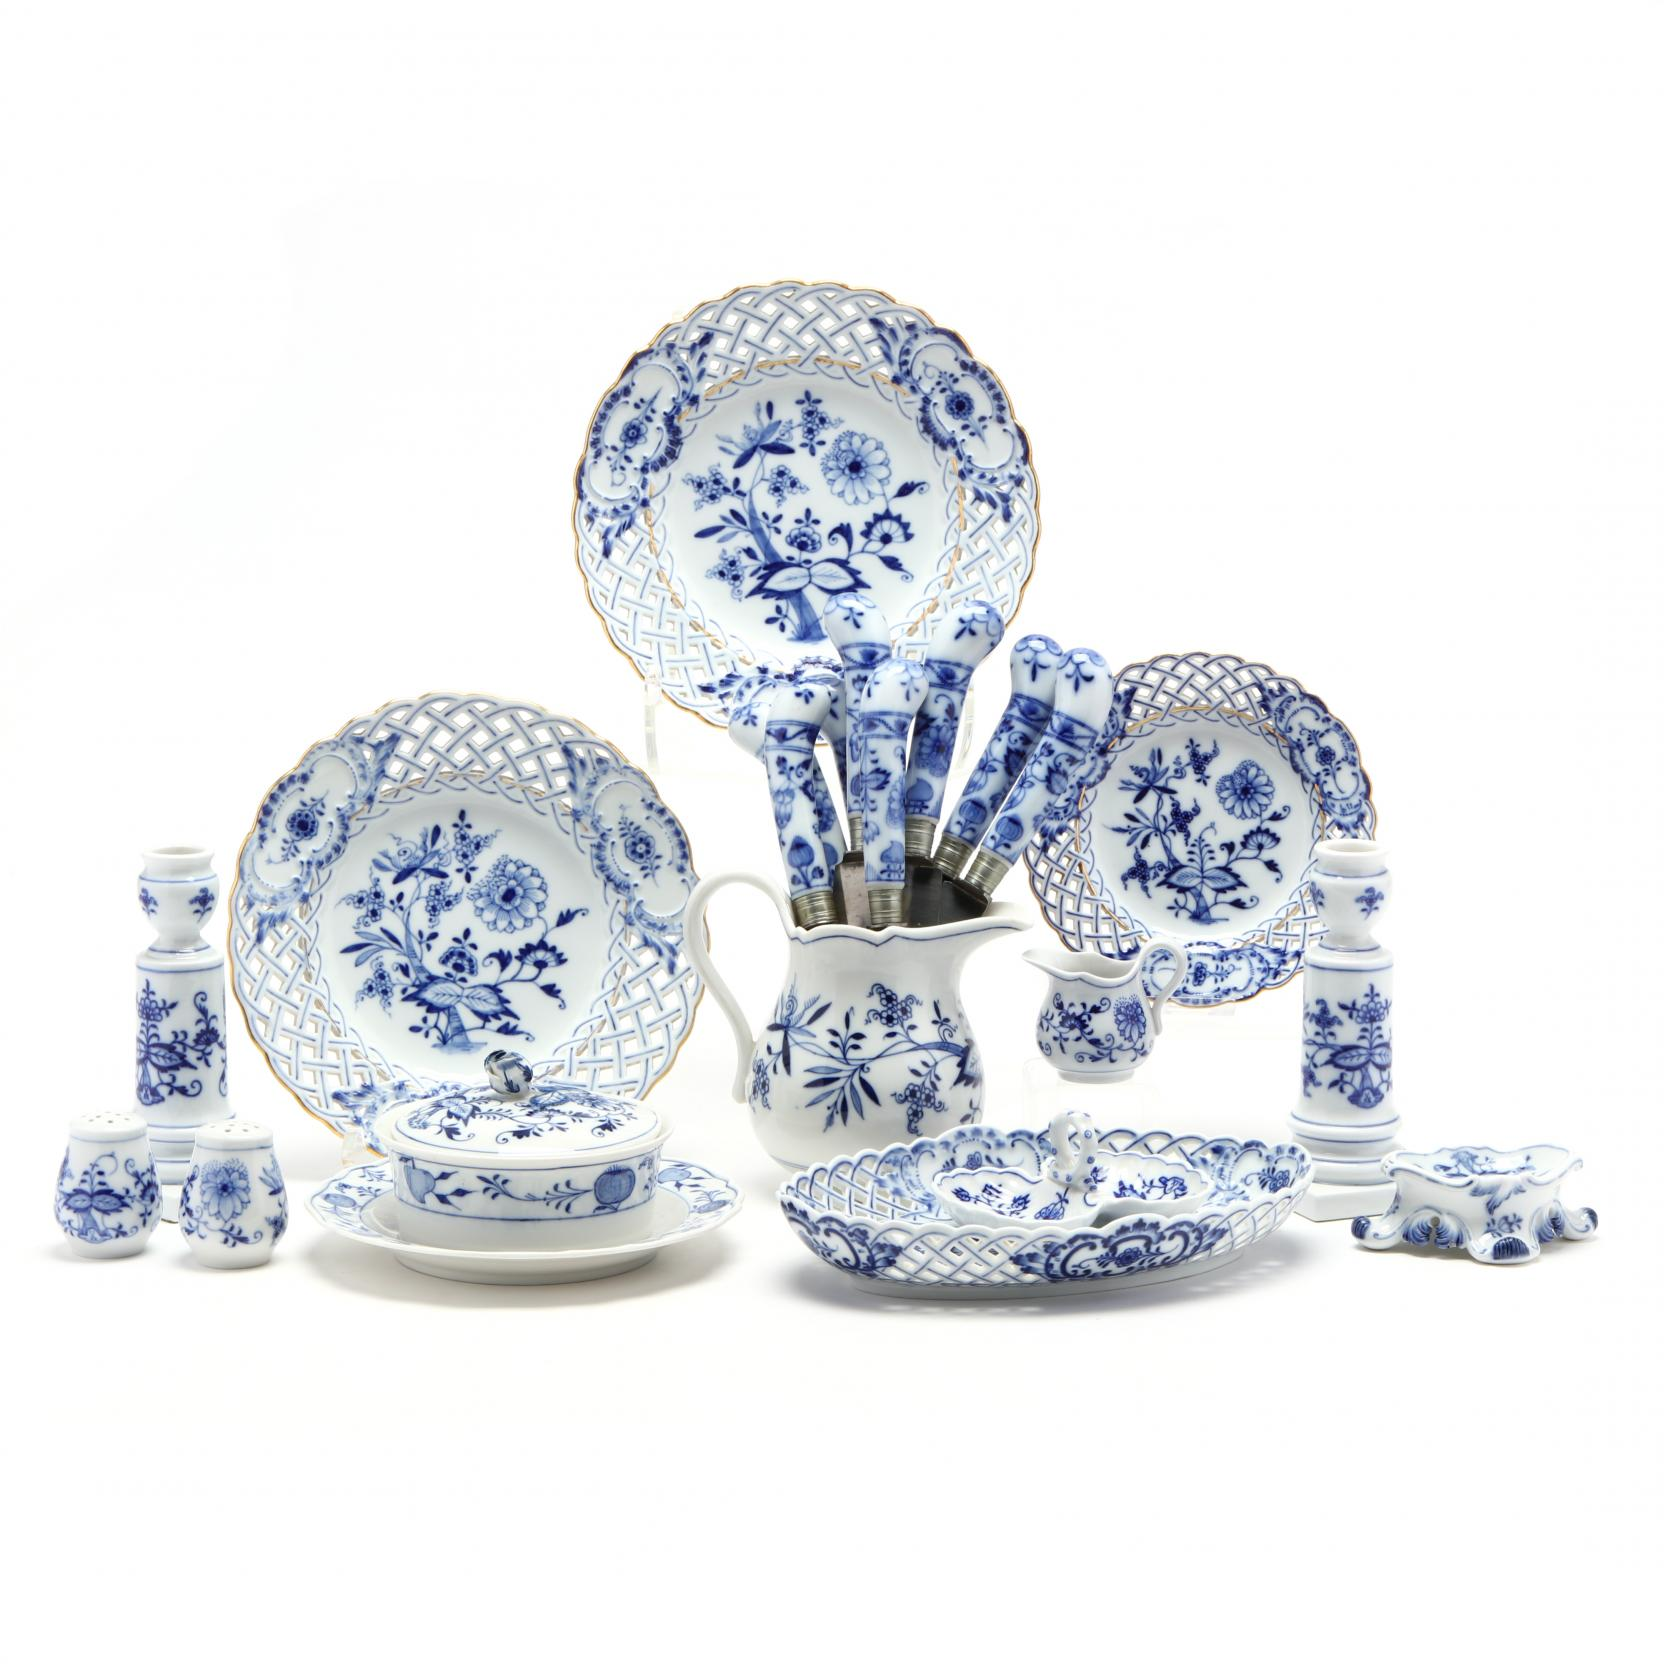 a-collection-of-meissen-blue-onion-porcelain